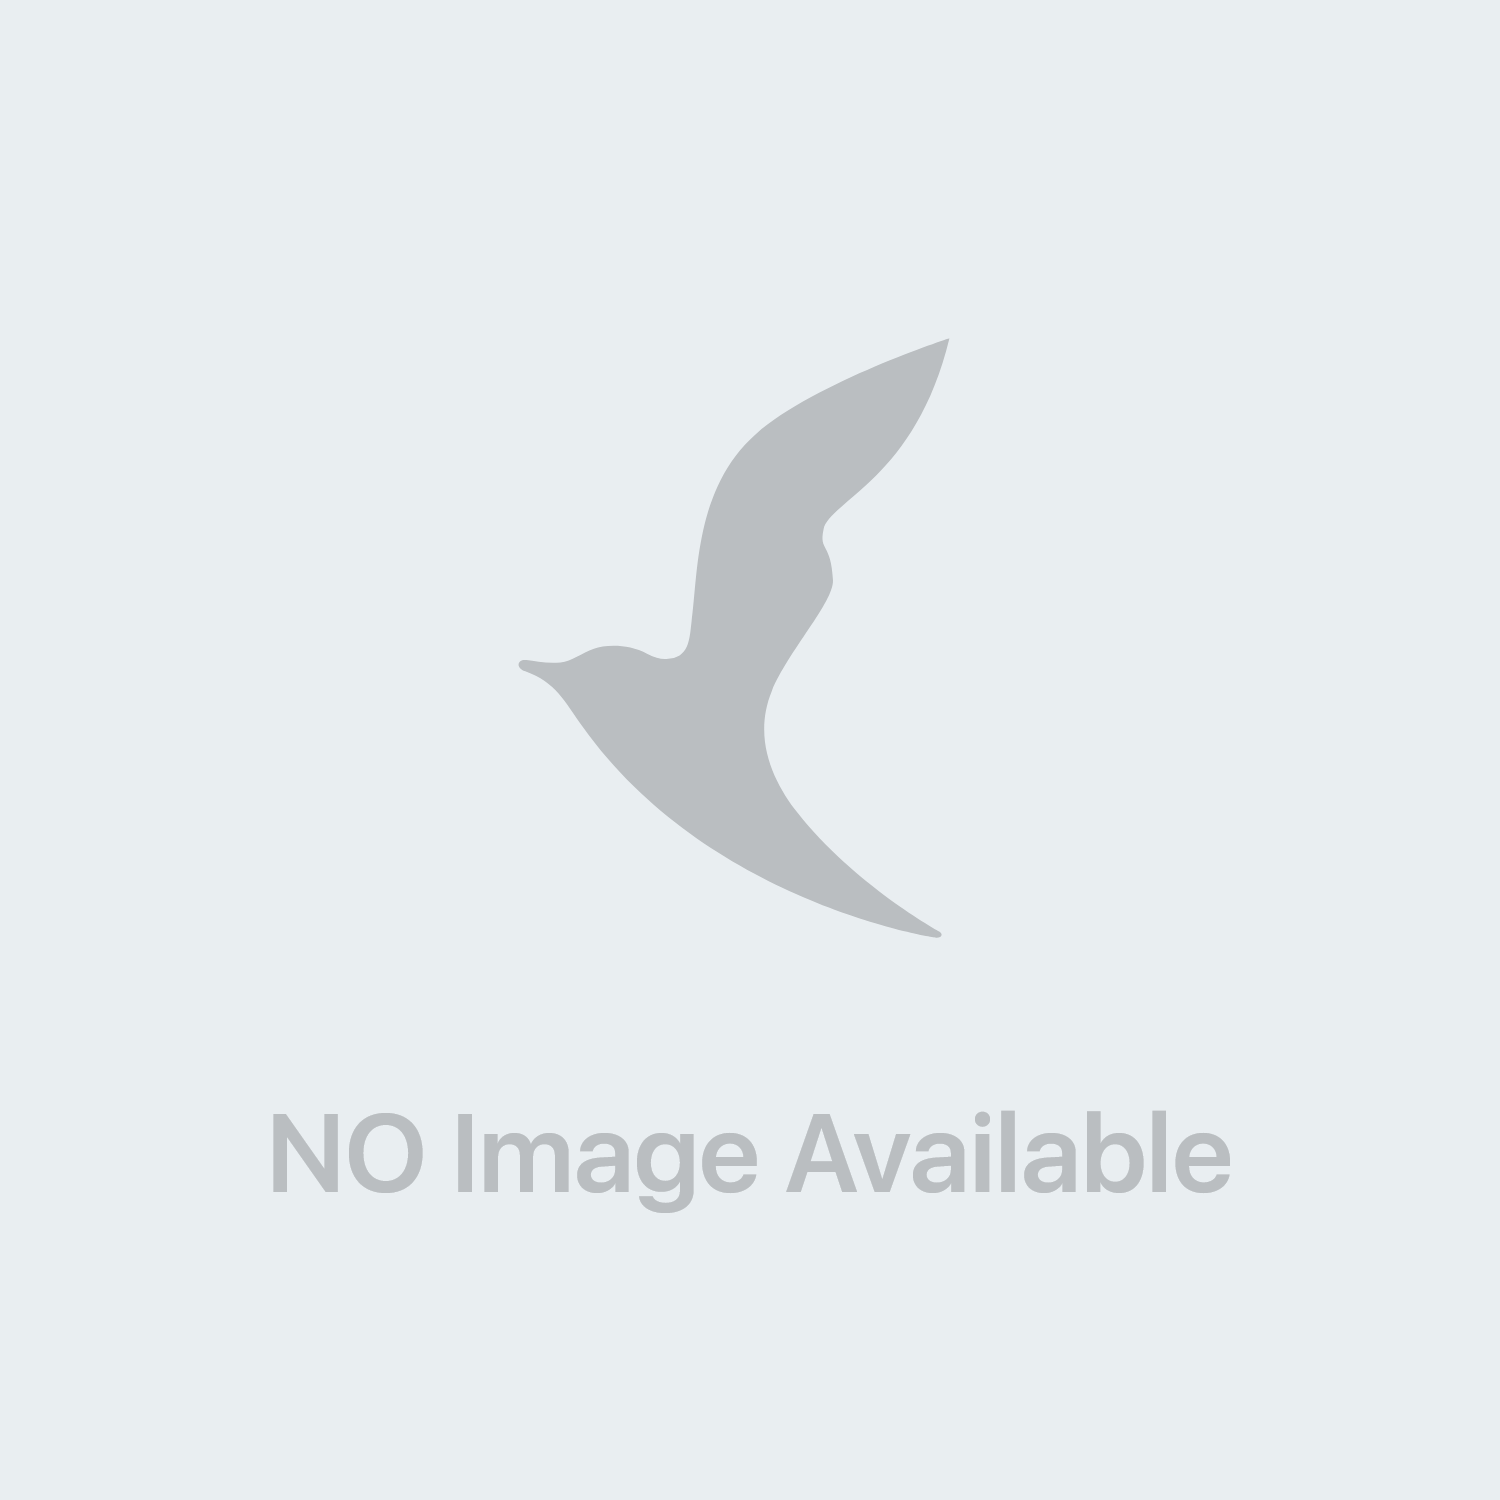 RoC Pro-Renove Crema Antietà Uniformante Ricca 50 Ml